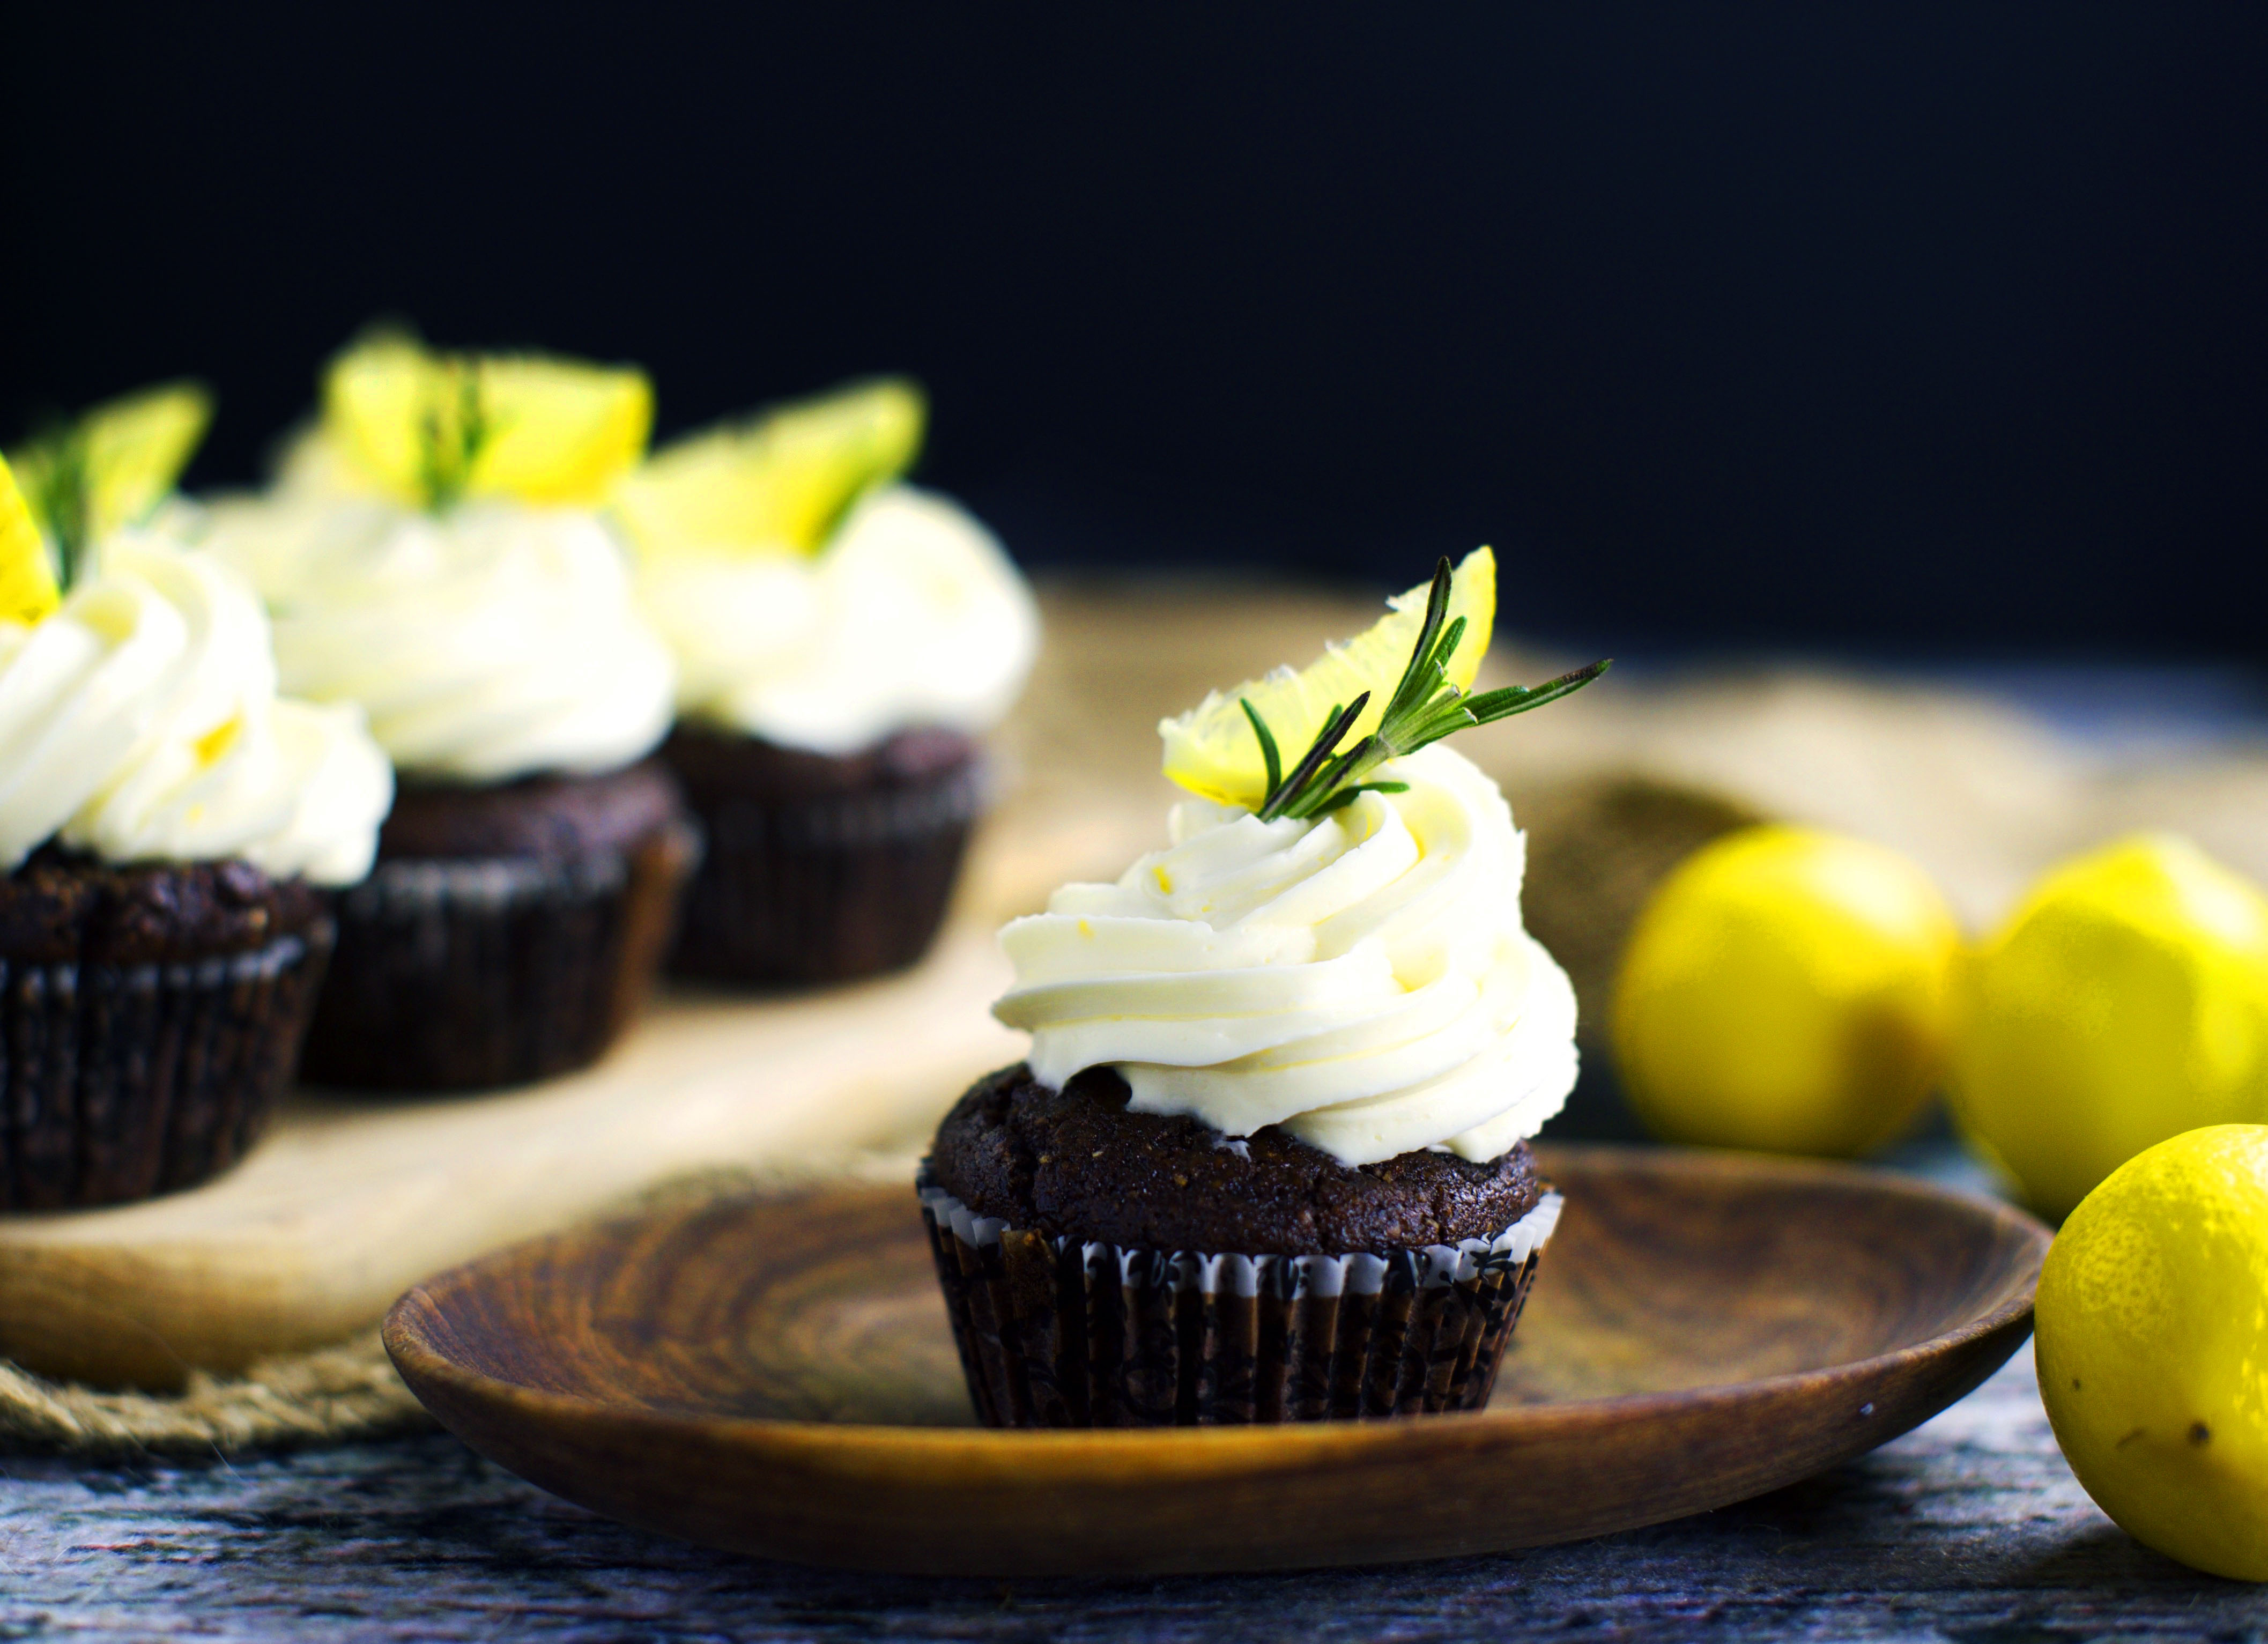 Low-Carb Chocolate Rosemary Cupcakes with Lemon Frosting